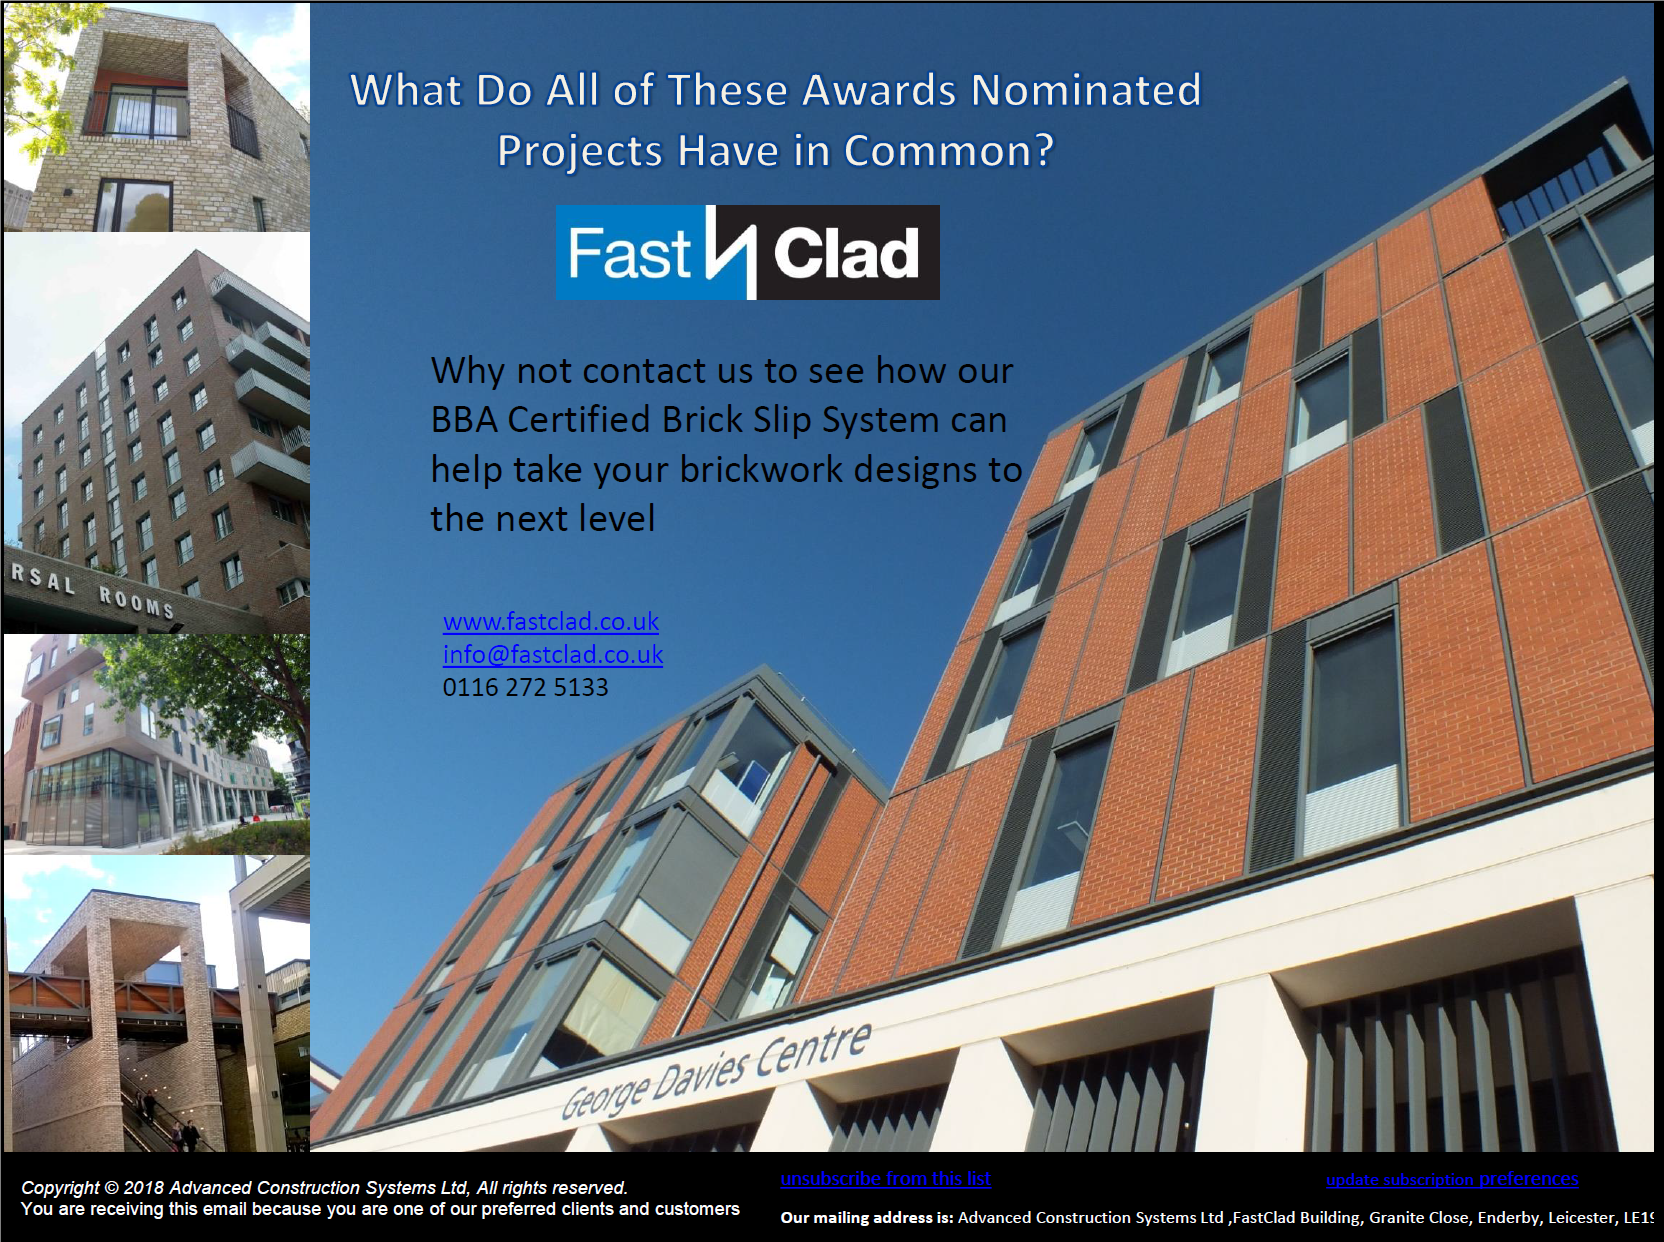 Awards Season is Here and FastClad Features on Many Nominated Projects